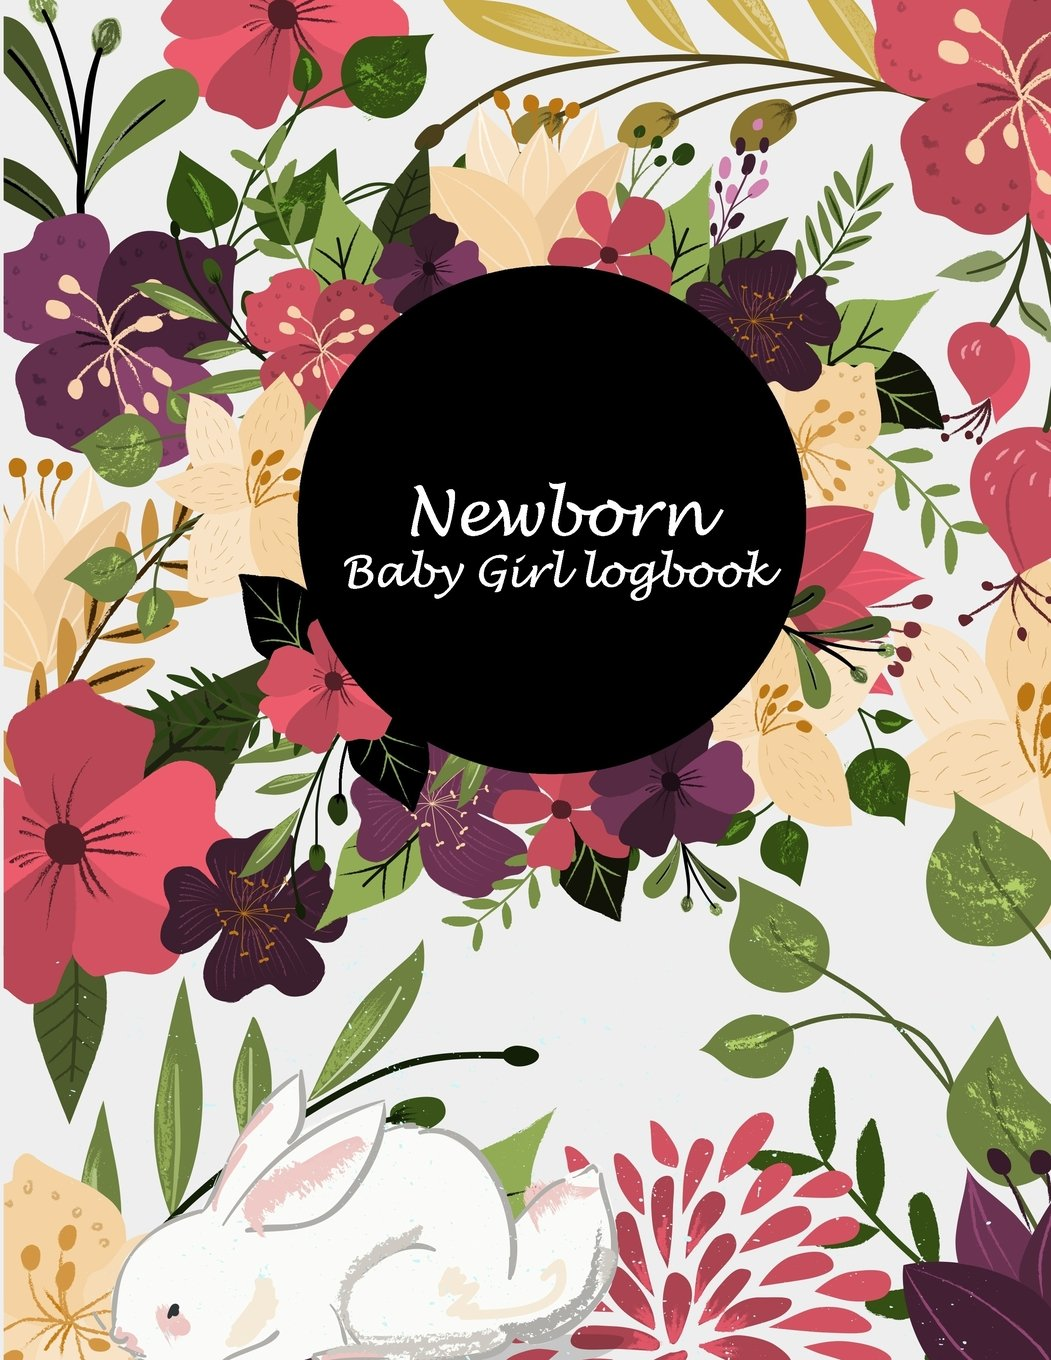 """Newborn Baby Girl logbook: Floral Premium Cover, Baby's Eat, Sleep, Poop Schedule Log Journal Large Size 8.5"""" x 11"""" Child's Health Record Keeper, Baby Health Record Notebook, Meal & Diapers Recorder pdf"""